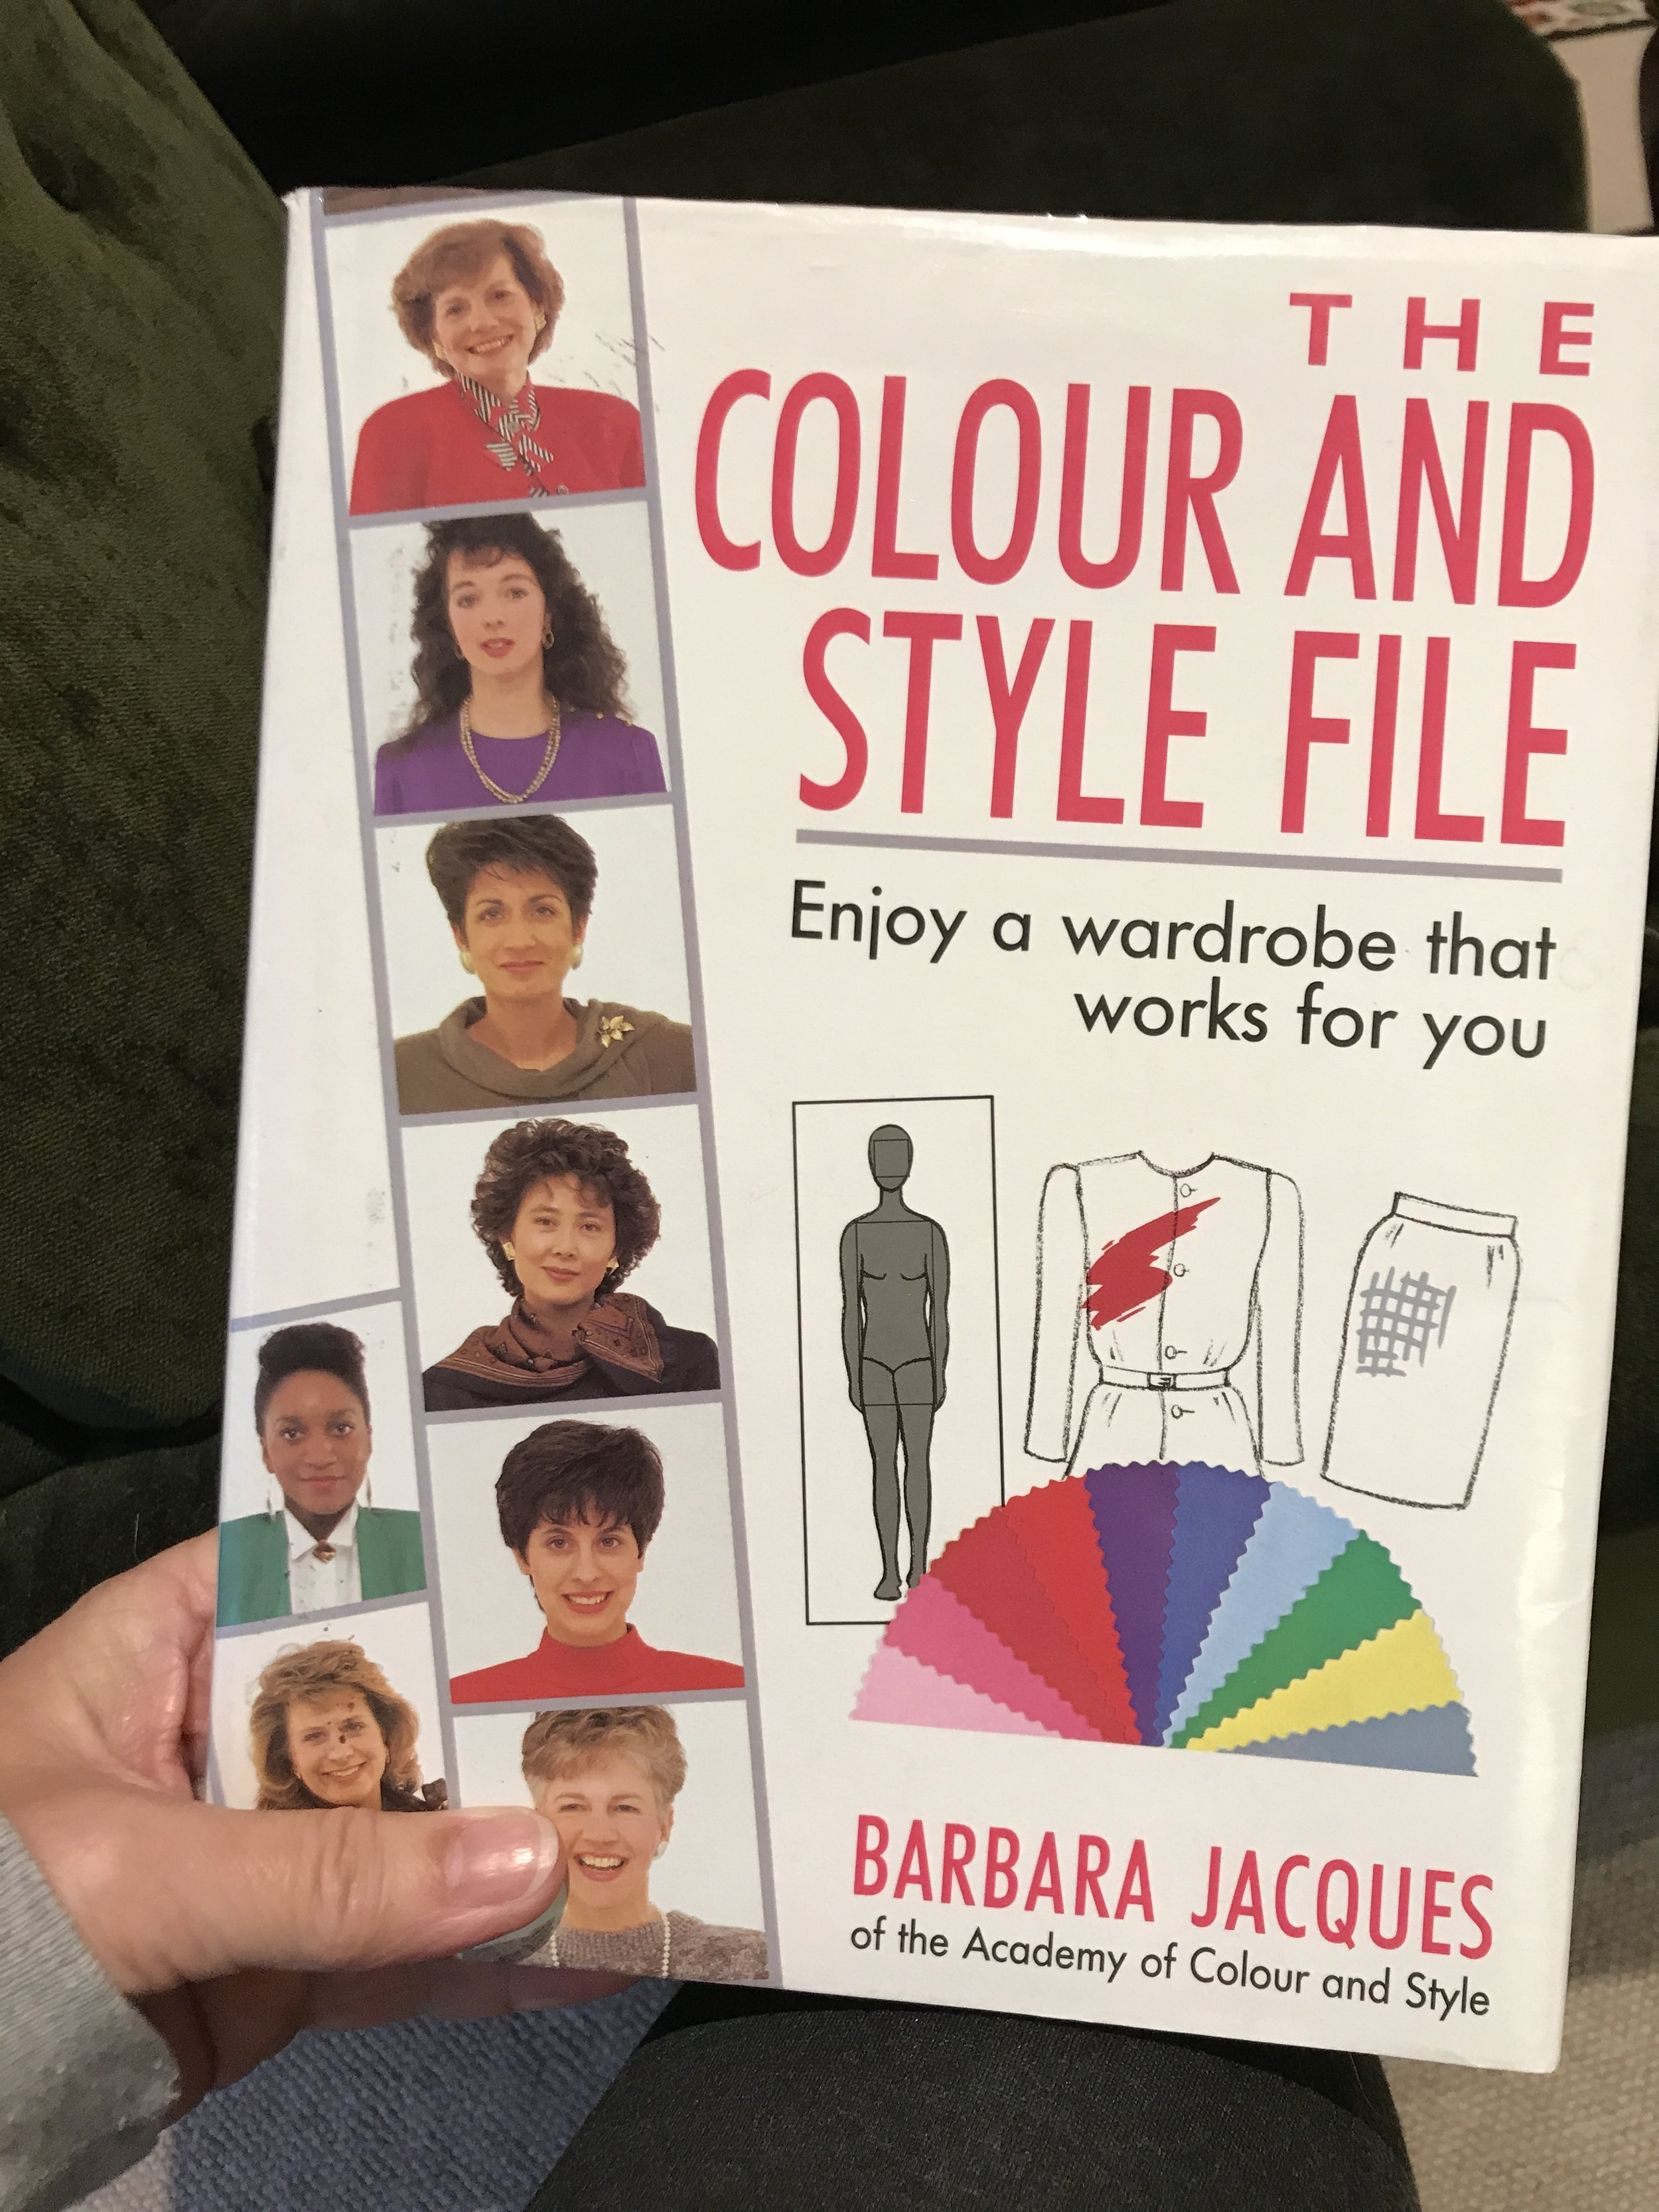 Barbara Jacques, Colour and Style File